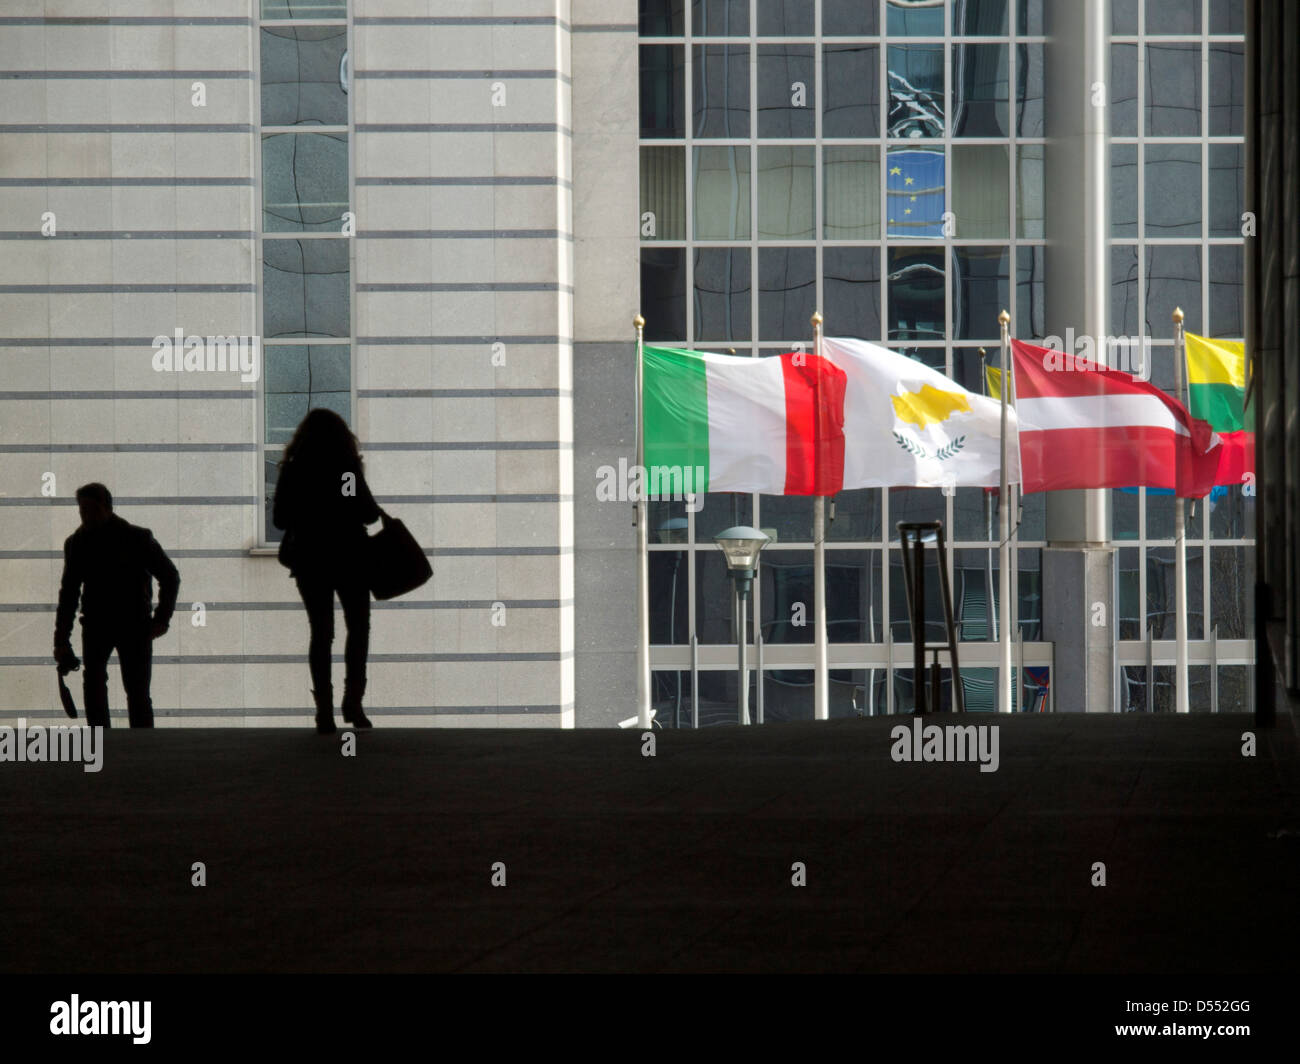 Silhouetted people and colourful flags at the European Parliament building in Brussels, Belgium - Stock Image